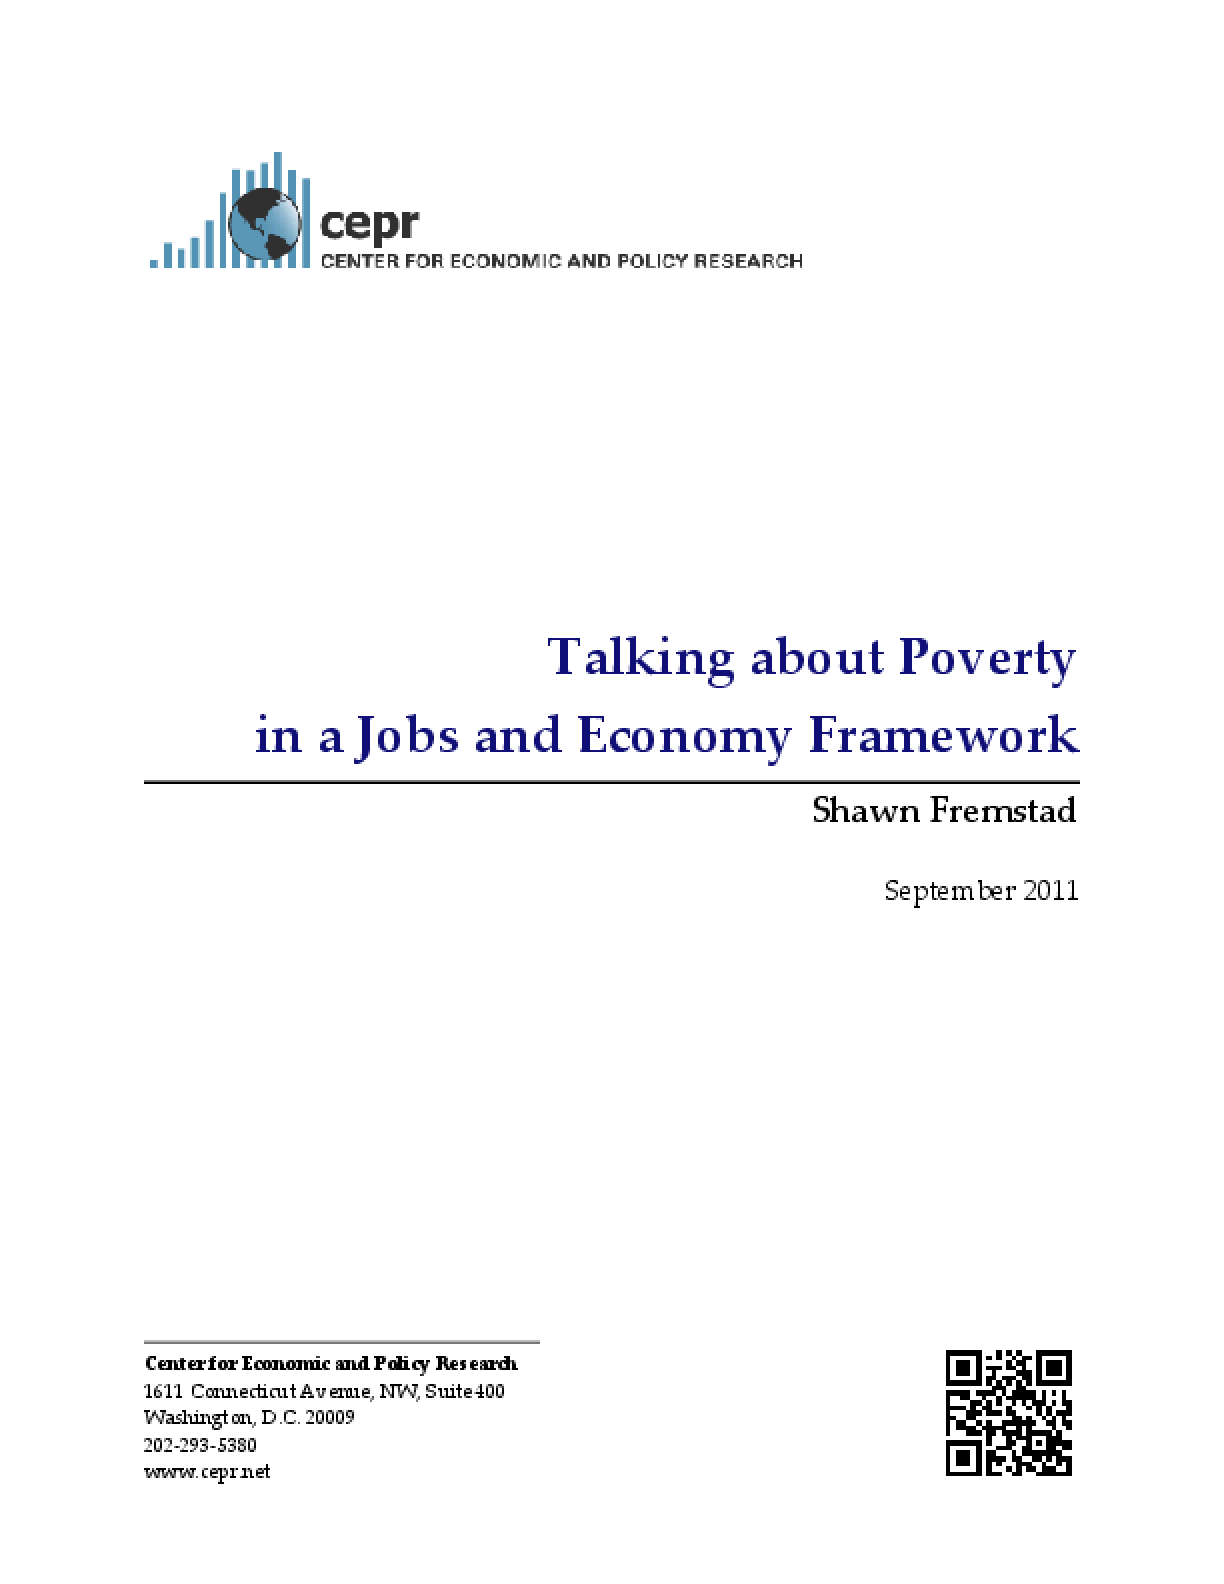 Talking About Poverty in a Jobs and Economy Framework